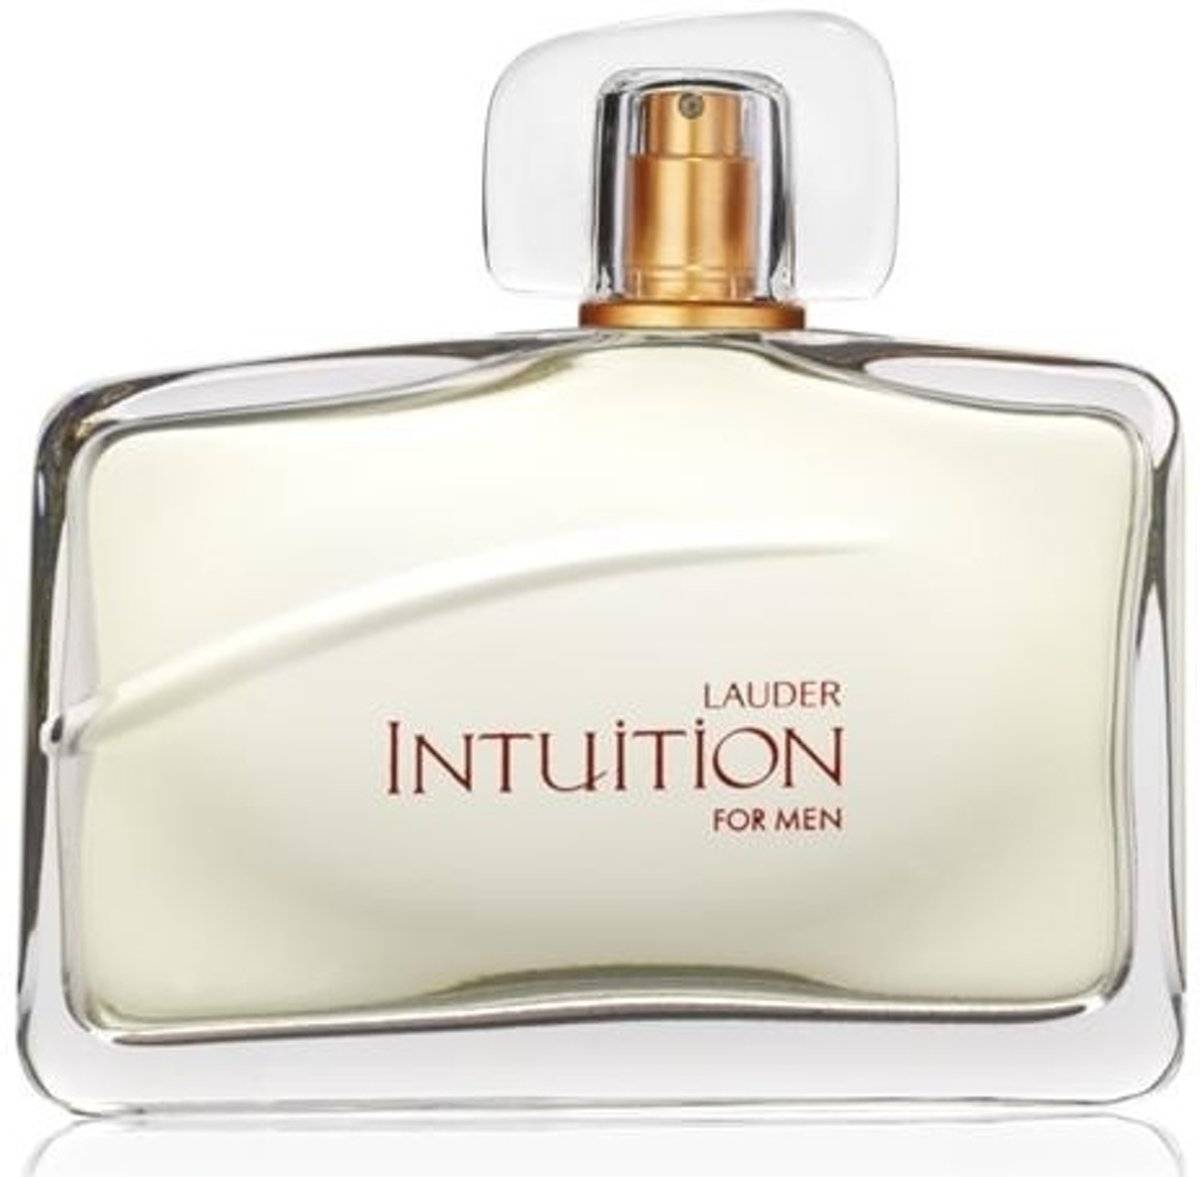 MULTI BUNDEL 2 stuks Estee Lauder Intuition For Men Eau De Toilette Spray 100ml